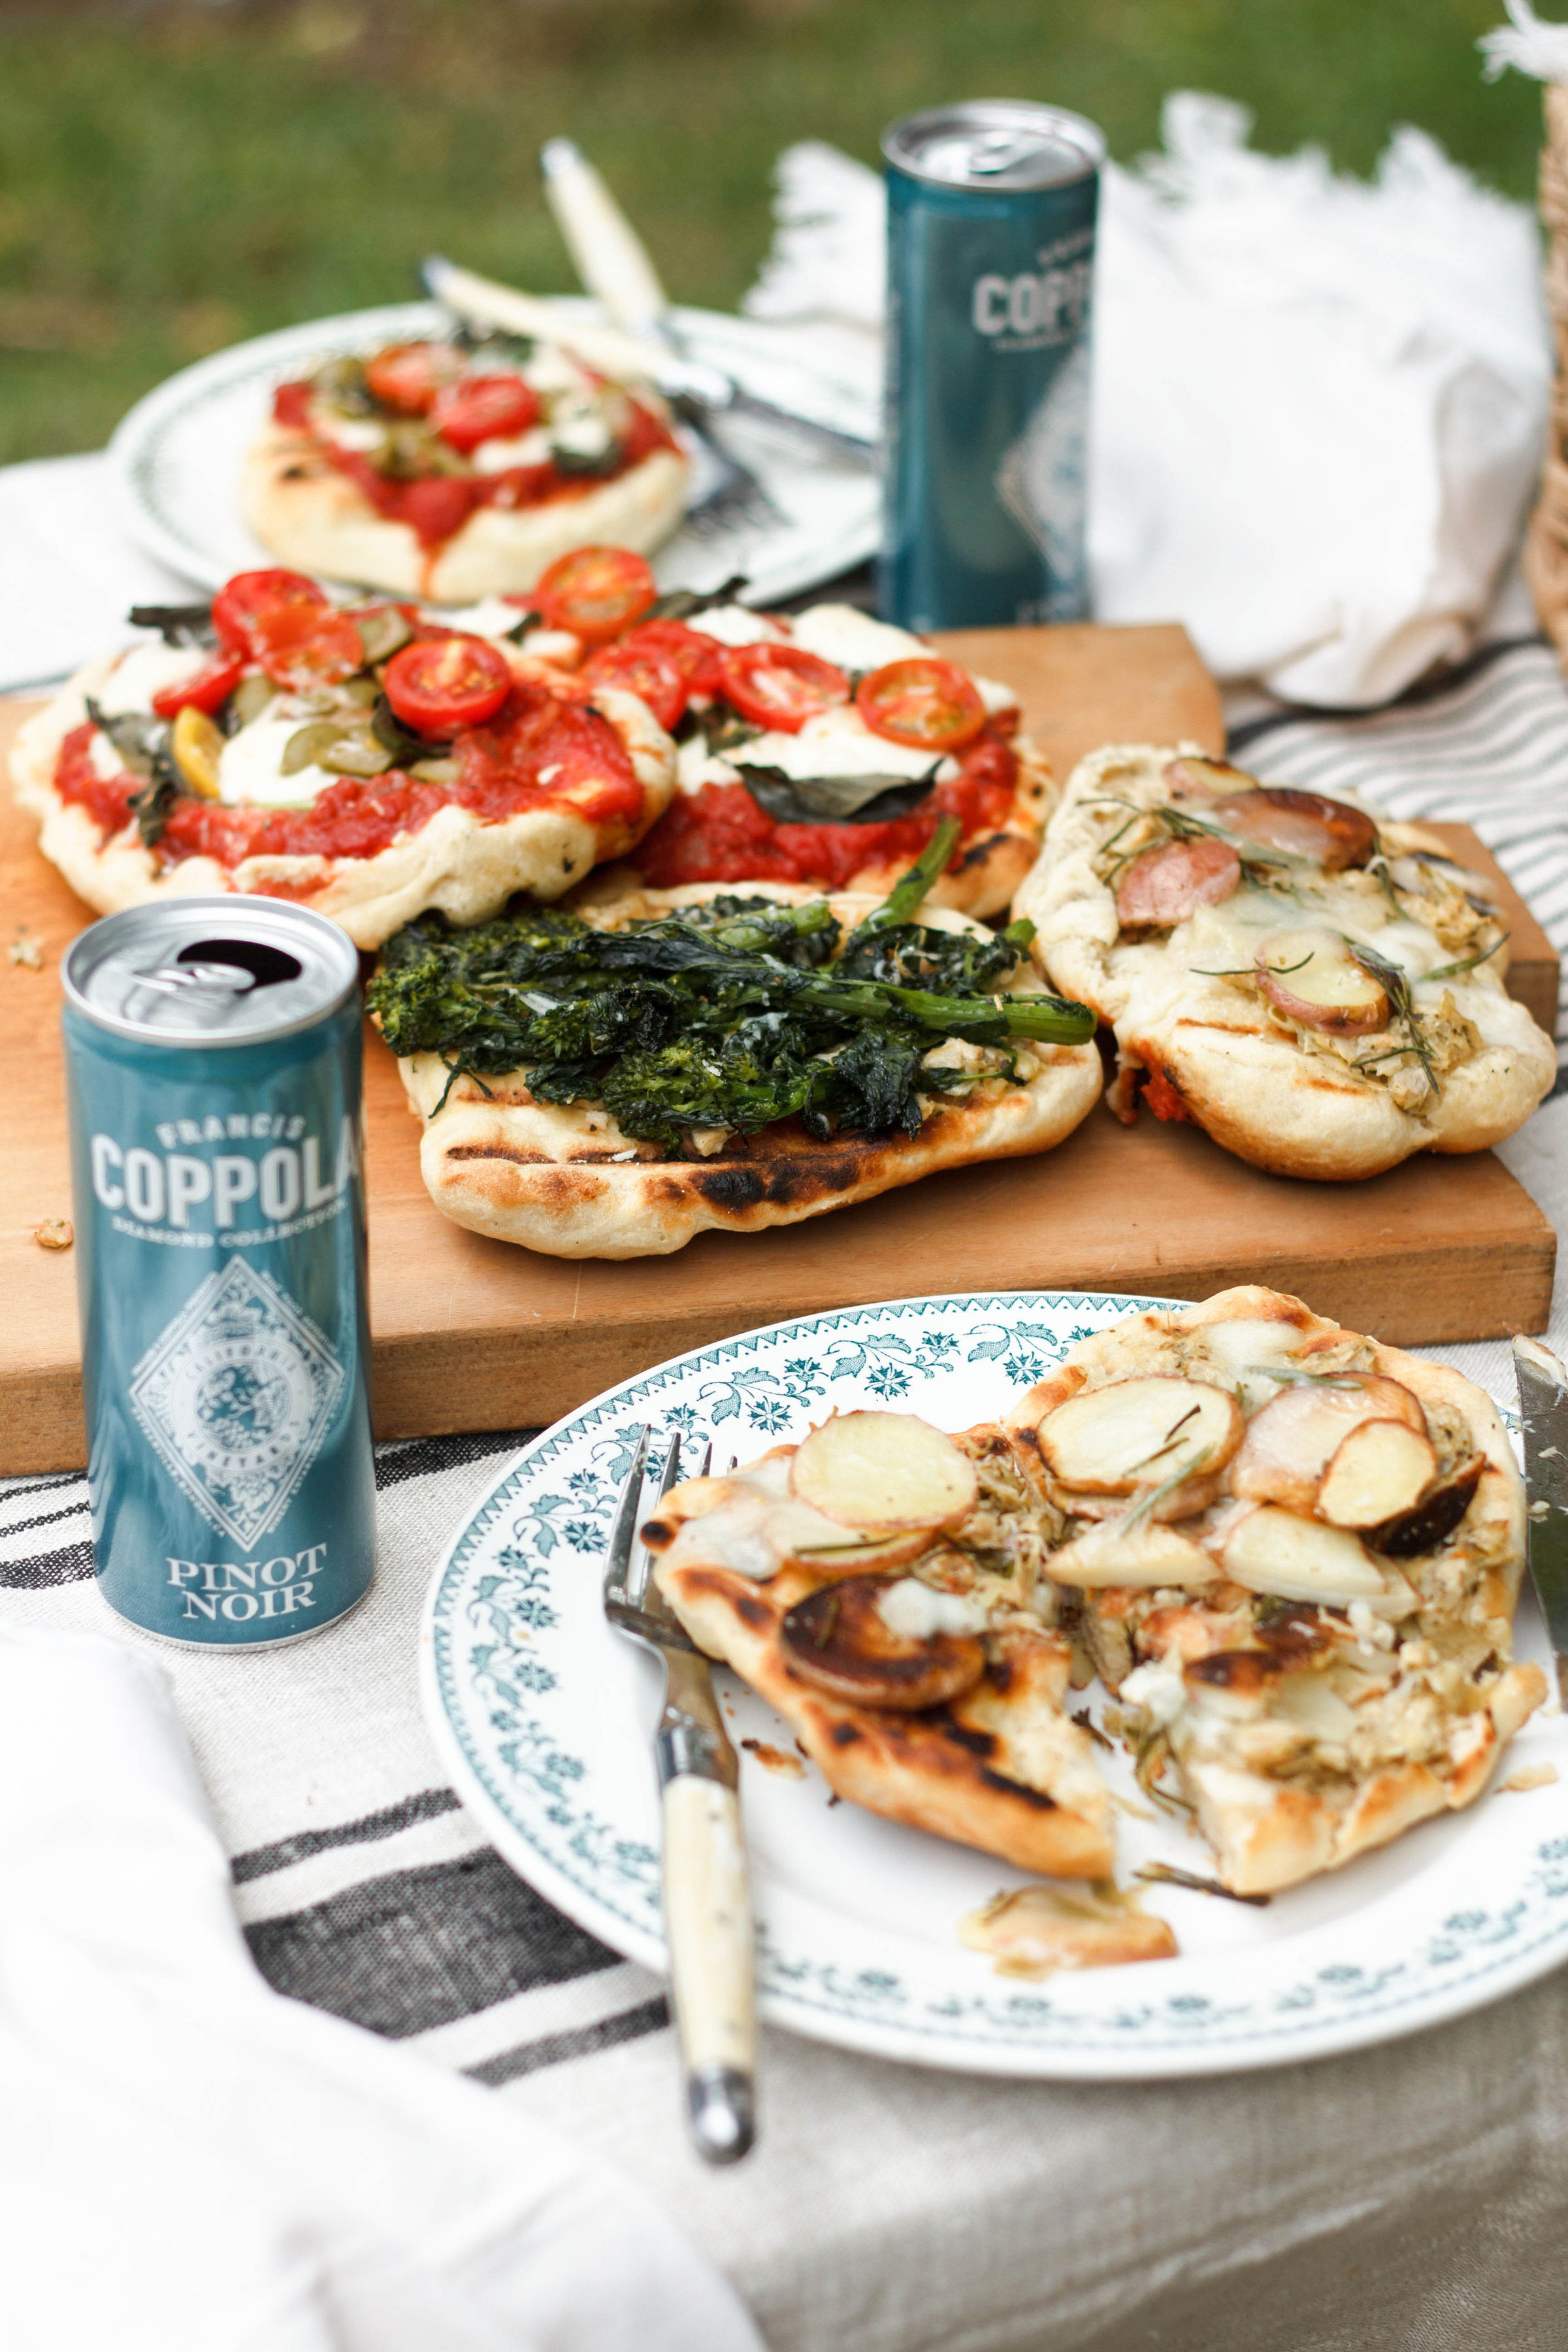 A table with an assortment of grilled pizzas and cans of pinot noir.